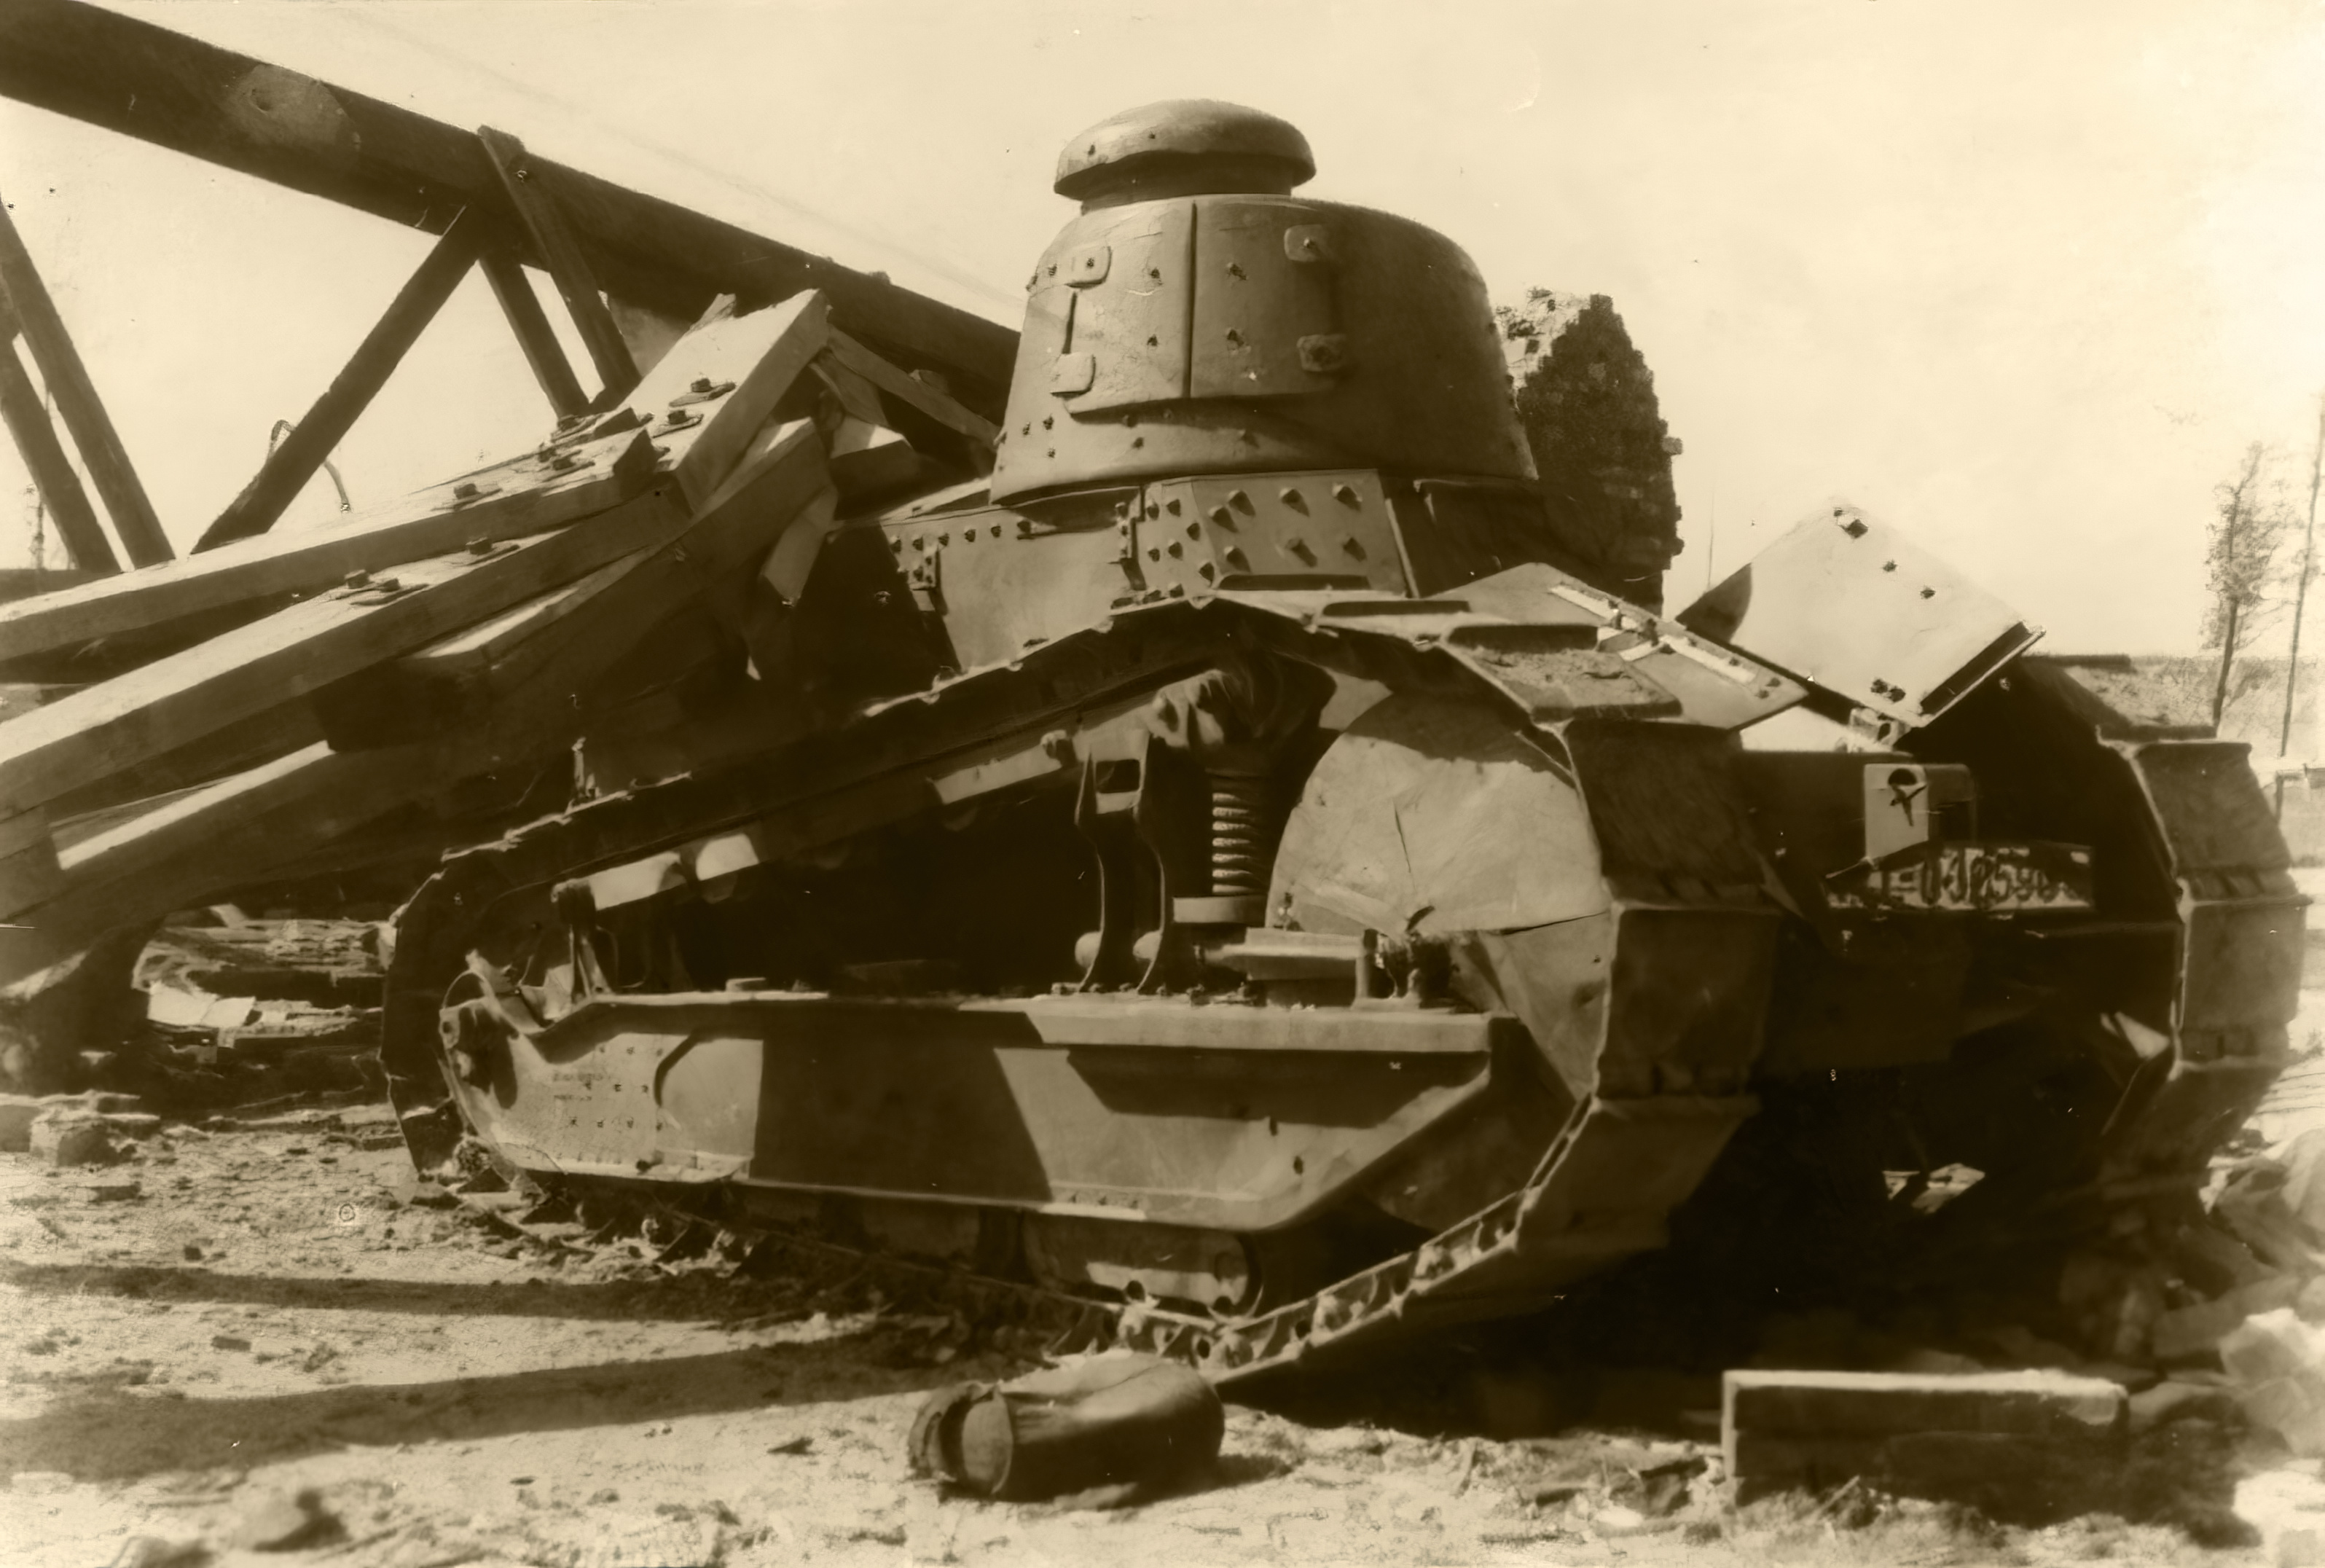 French Army Renault FT 17 captured during the Battle of France 1940 NIOD